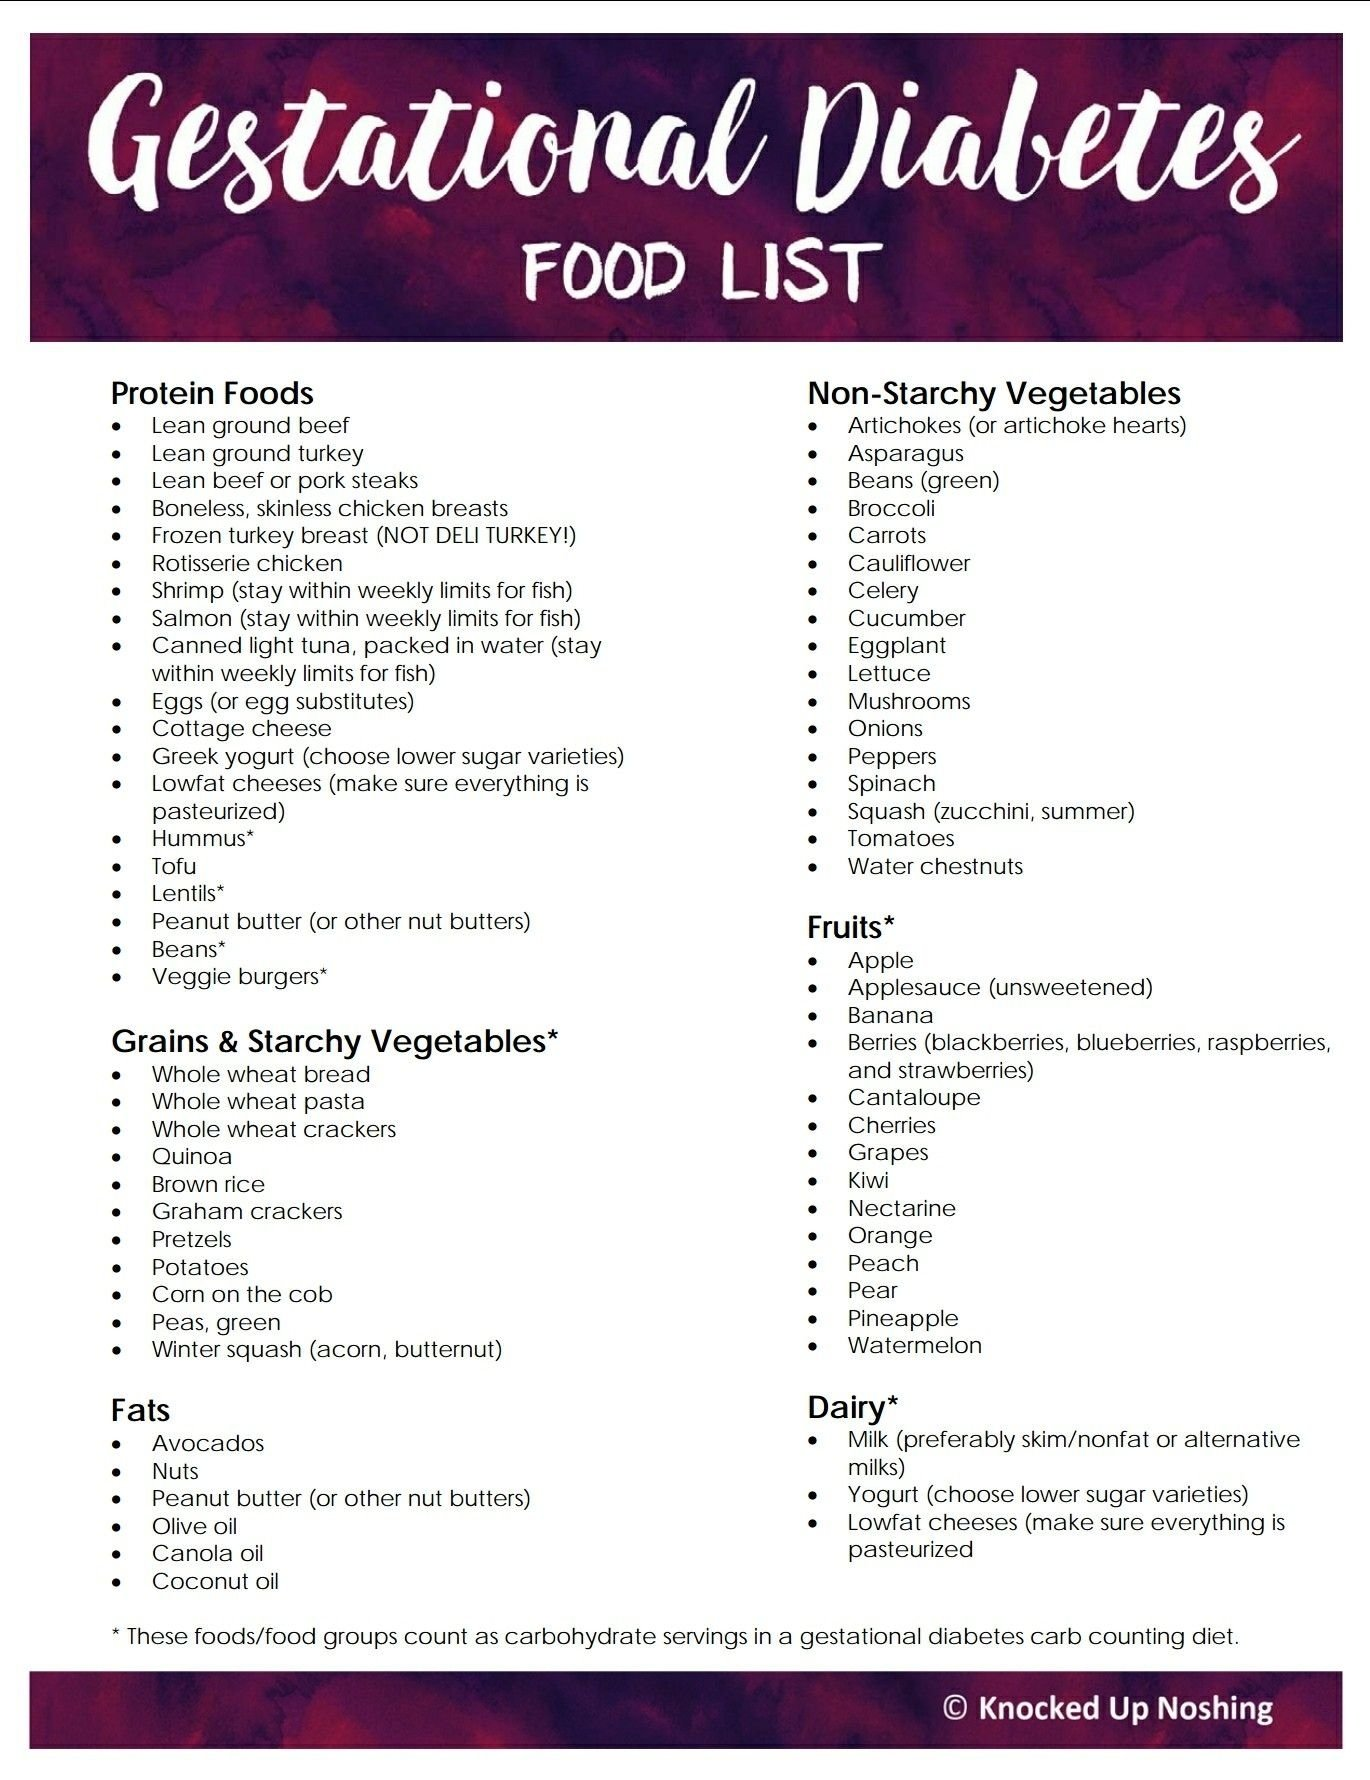 10 Awesome Gestational Diabetes Meal Plan Ideas gestational diabetes food list http www diabetesdestroyerbonus